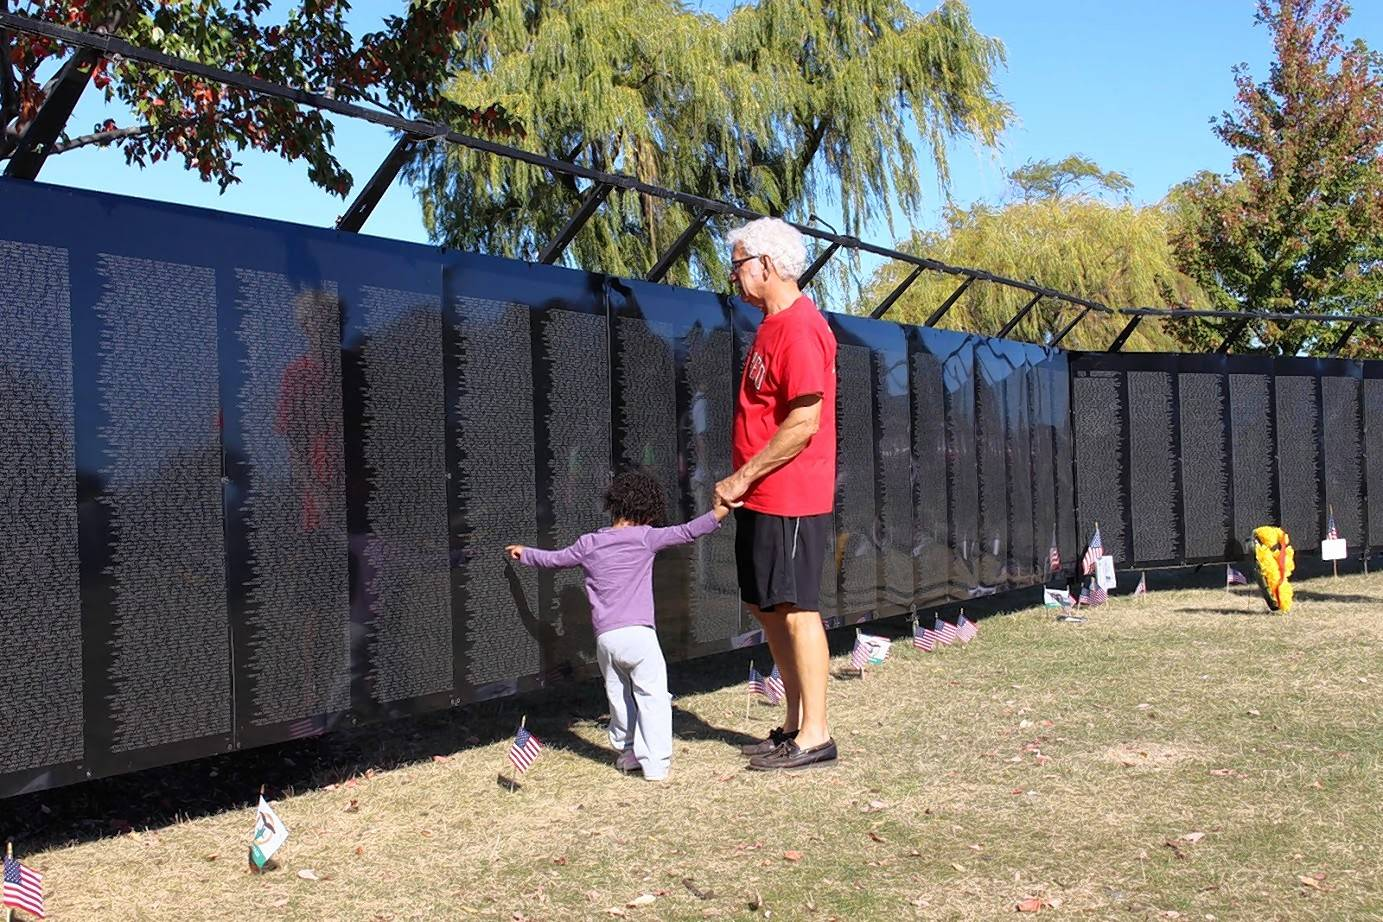 As part of an Oakton service project, Vietnam veteran Les Durov of Des Plaines documented visitors to the Wall that Heals, a traveling half-size replica of the Vietnam Memorial in Washington, D.C.